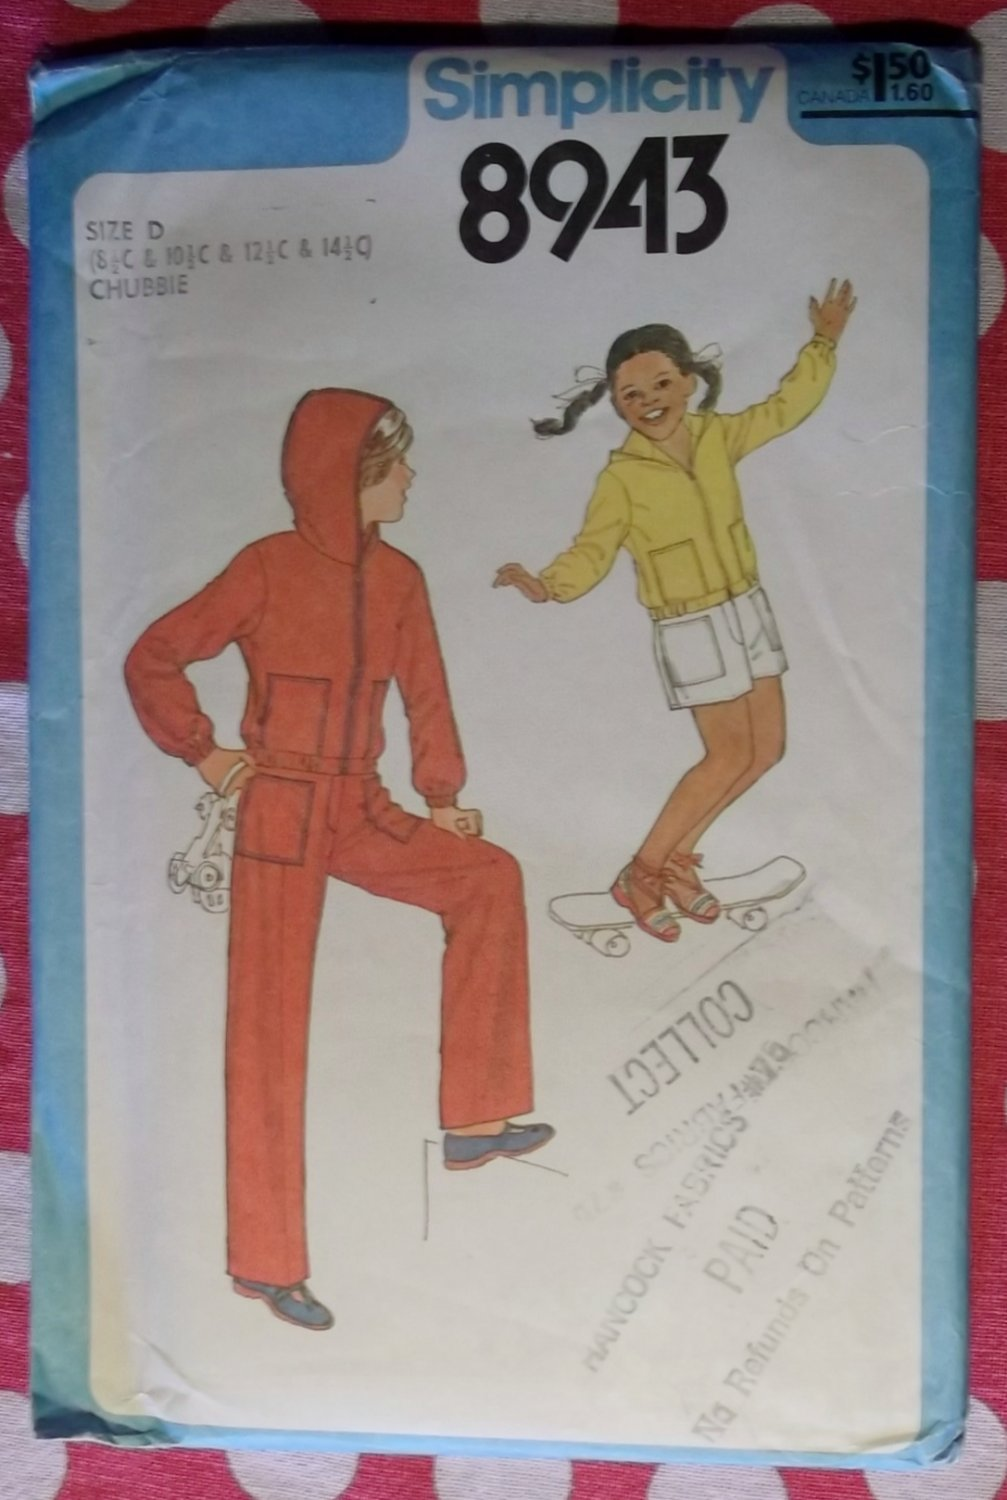 OOP Simplicity 8943 Pattern, Outerwear, Pants, Shorts, Hooded Jacket, Sz Chubbie 8 1/2 to 14 1/2.